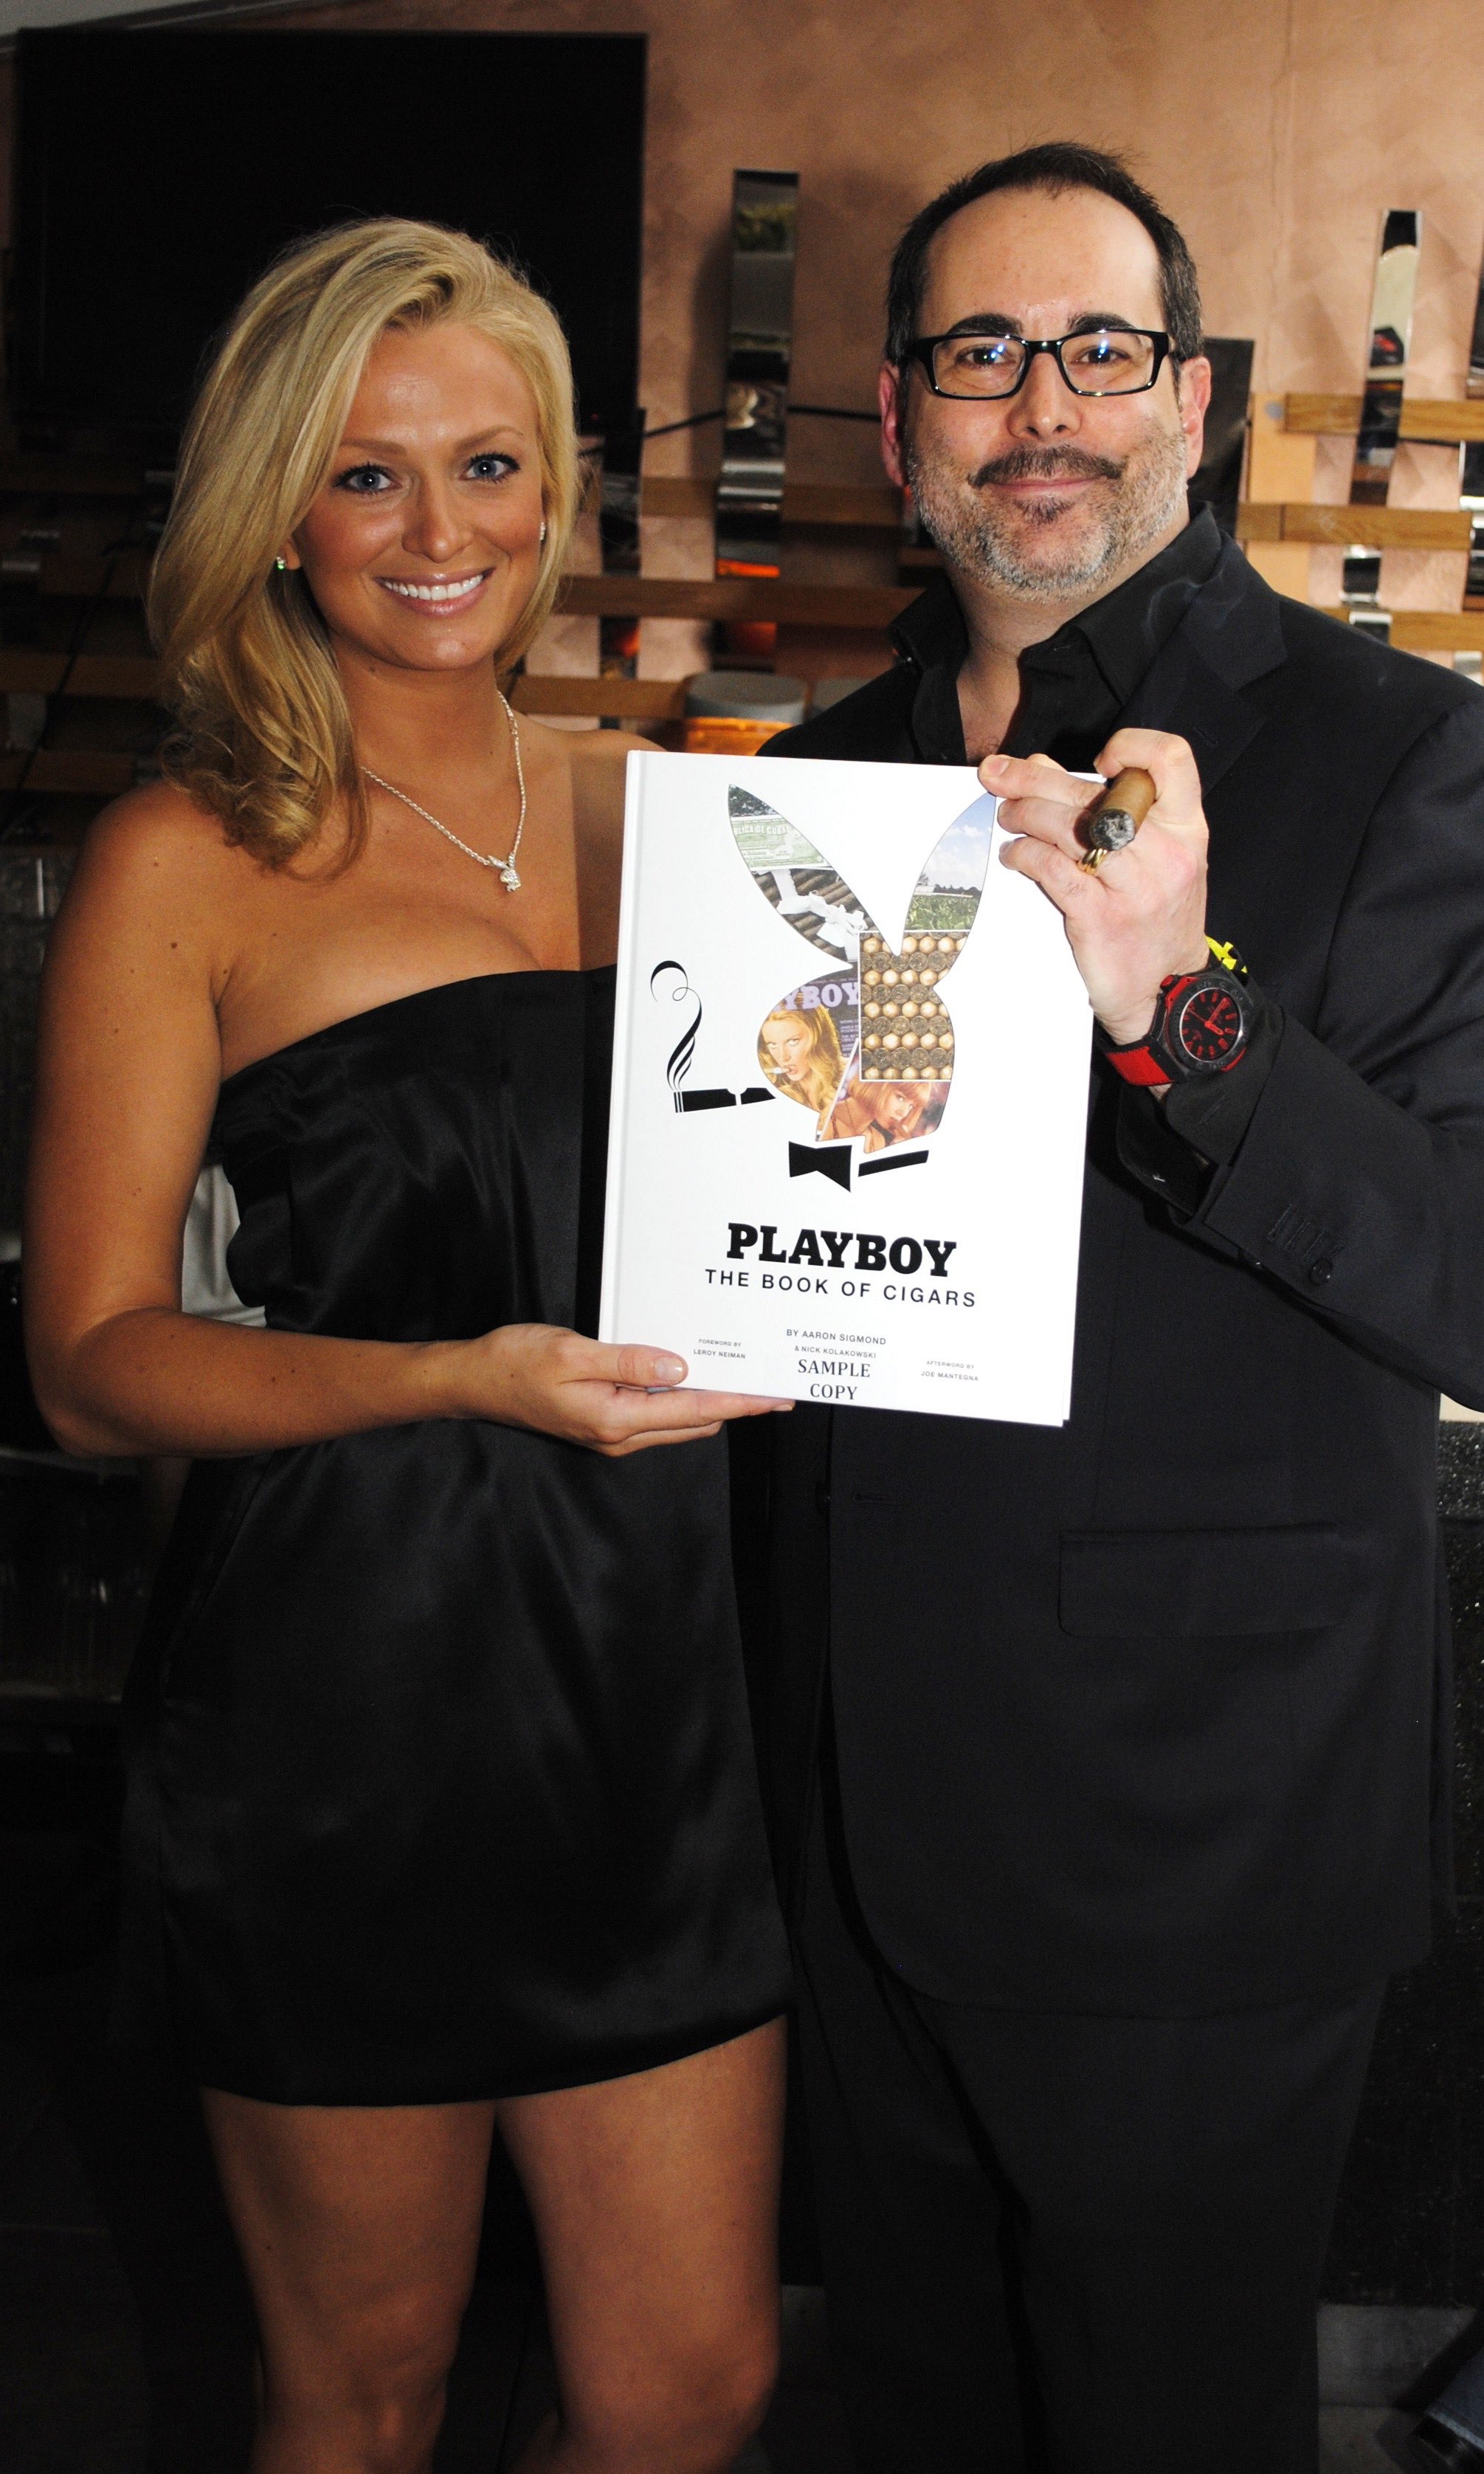 Sigmond At The Launch Of Playboy Book Cigars In 2010